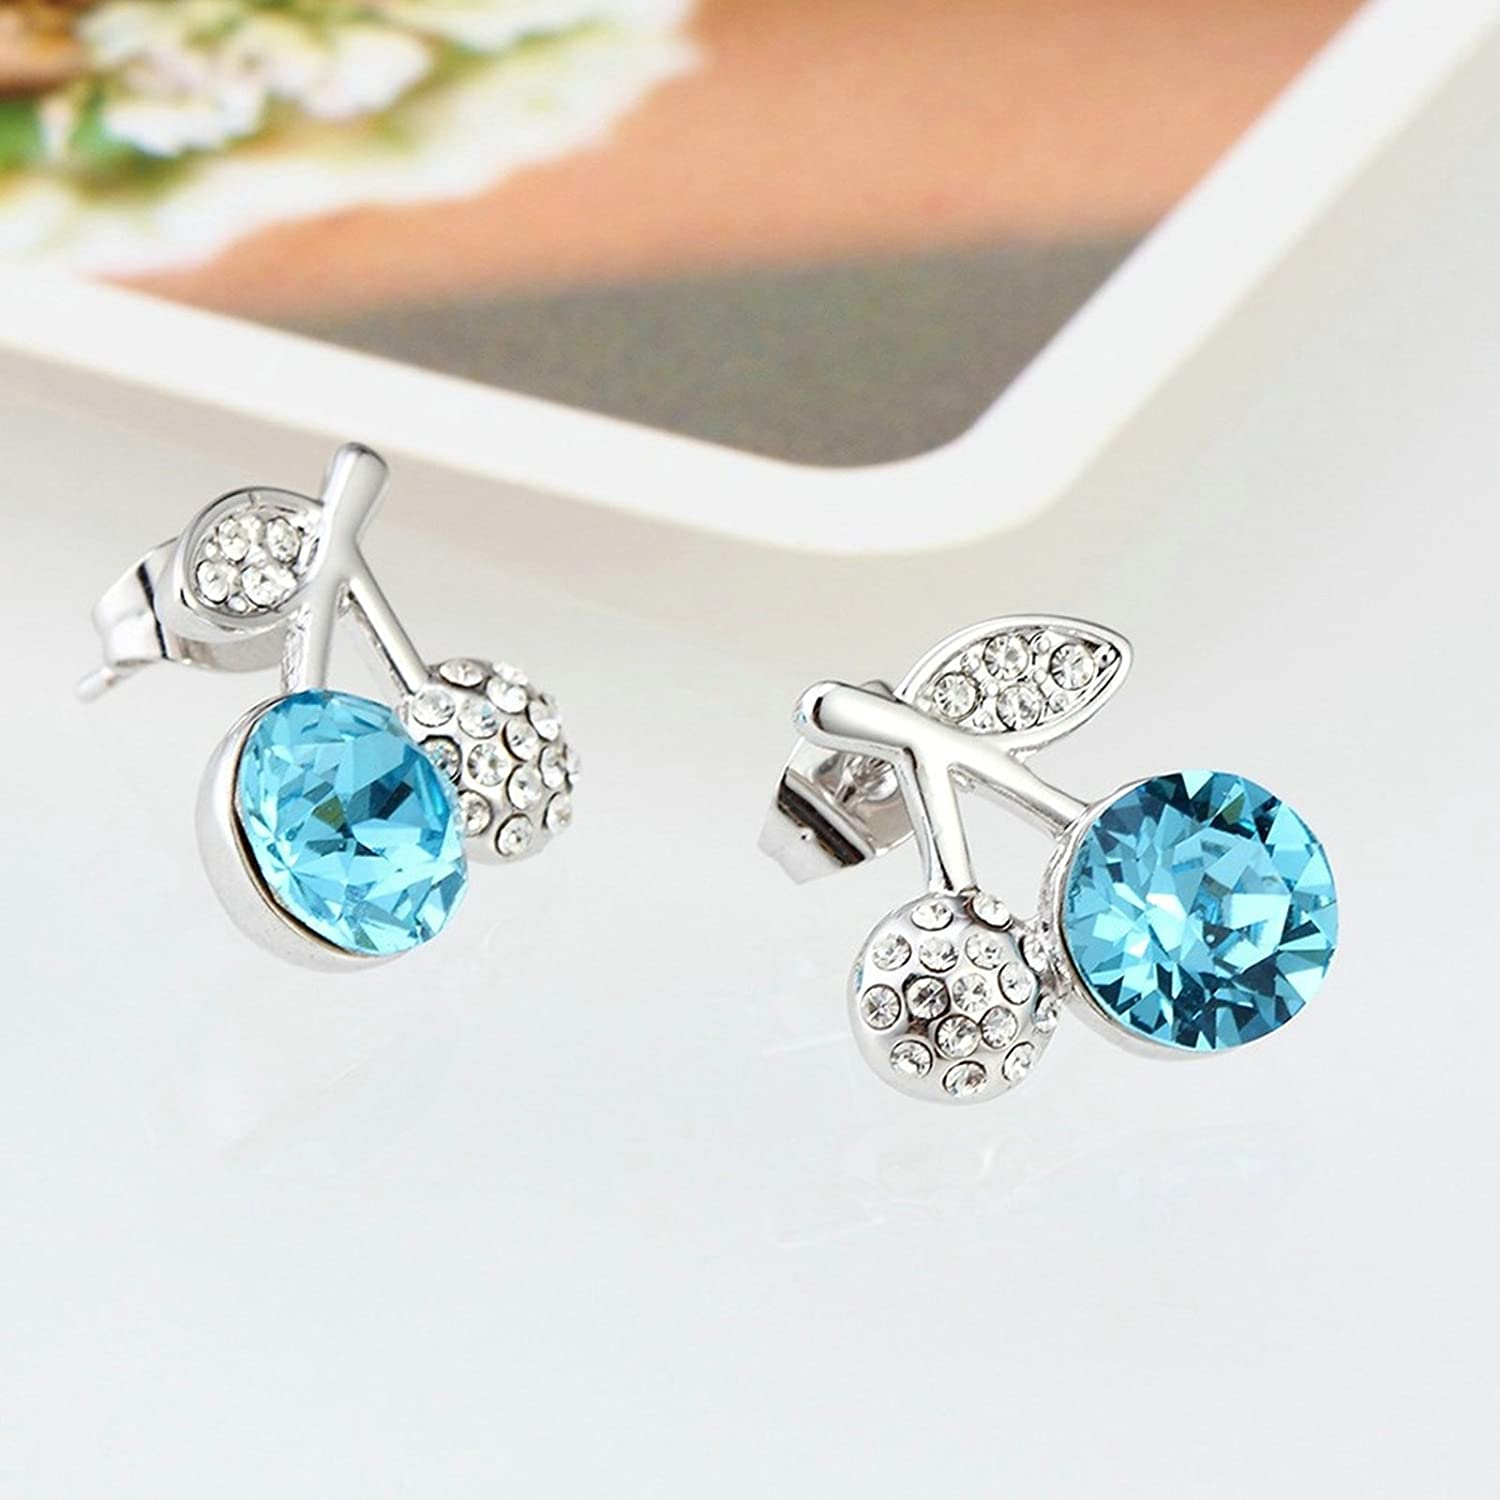 Adisaer Gold Plated Stud Earrings for Womens White /& Blue Fruit Cubic Ziconia Wedding Earrings for Brides